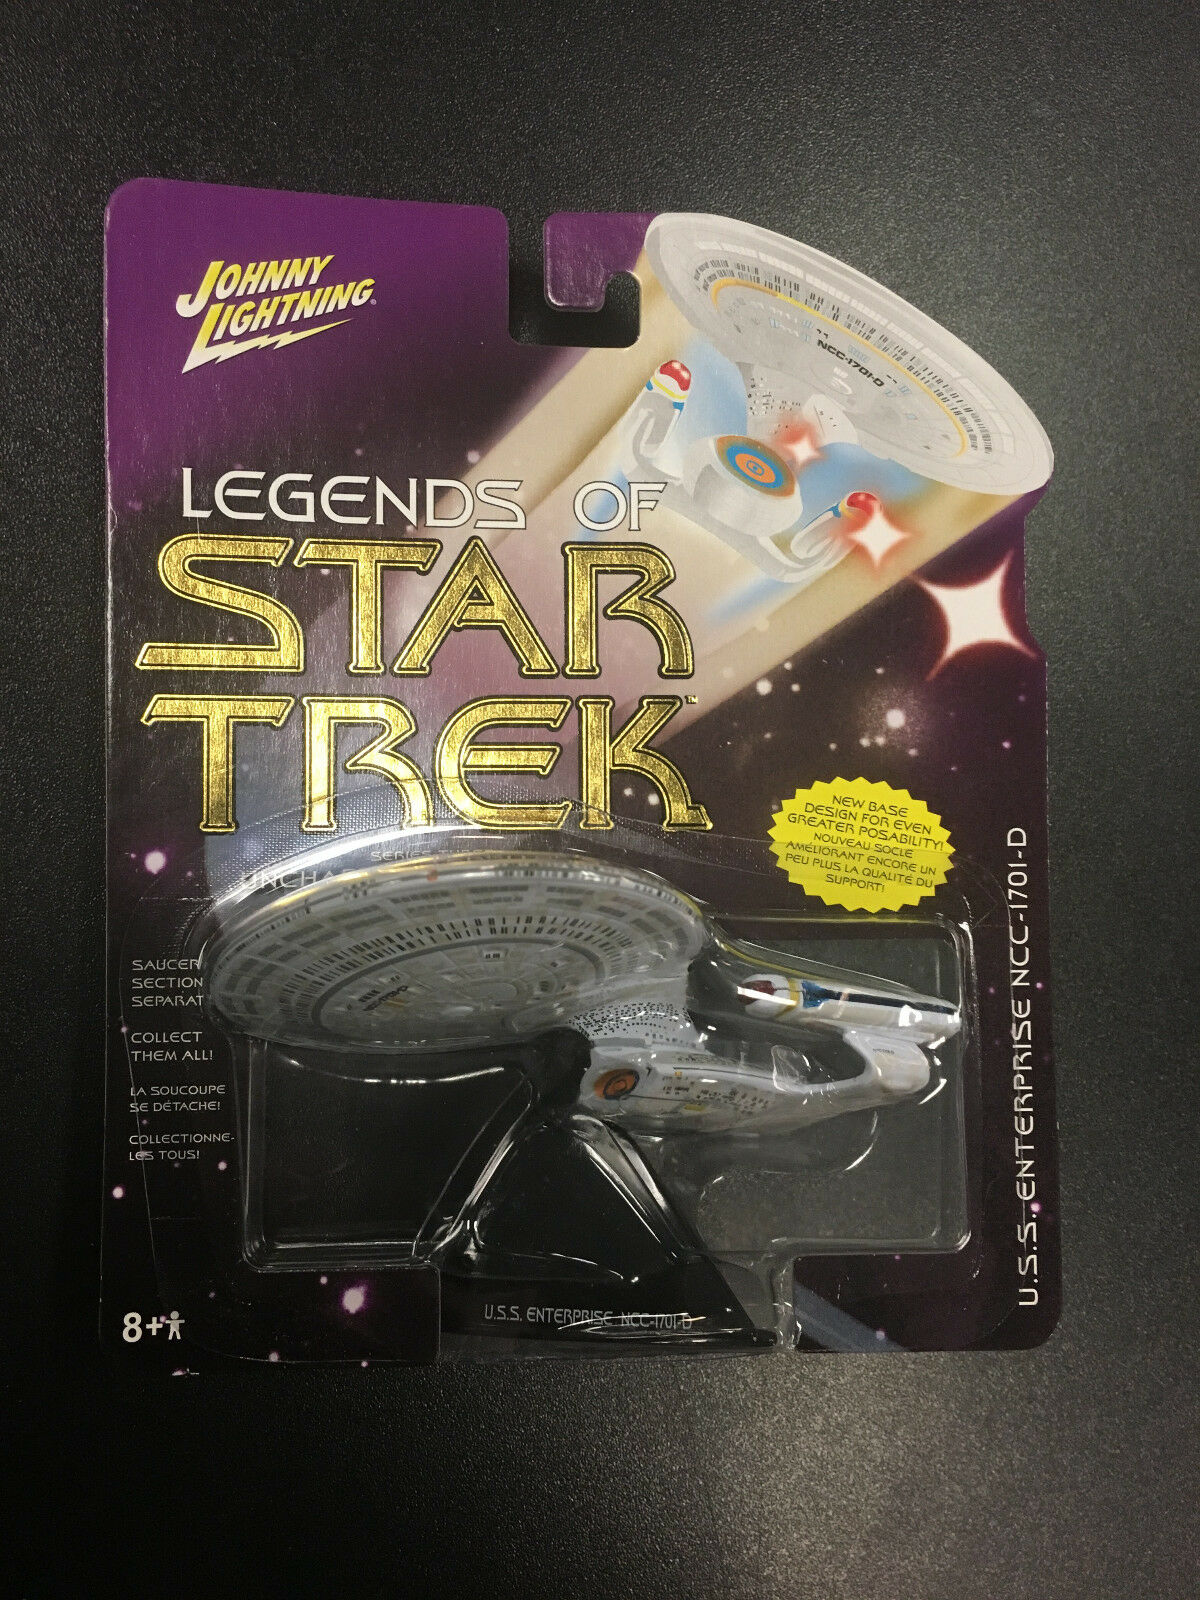 Johnny Lightning Legends of Star Trek Series 3 USS Enterprise NCC-1701-D